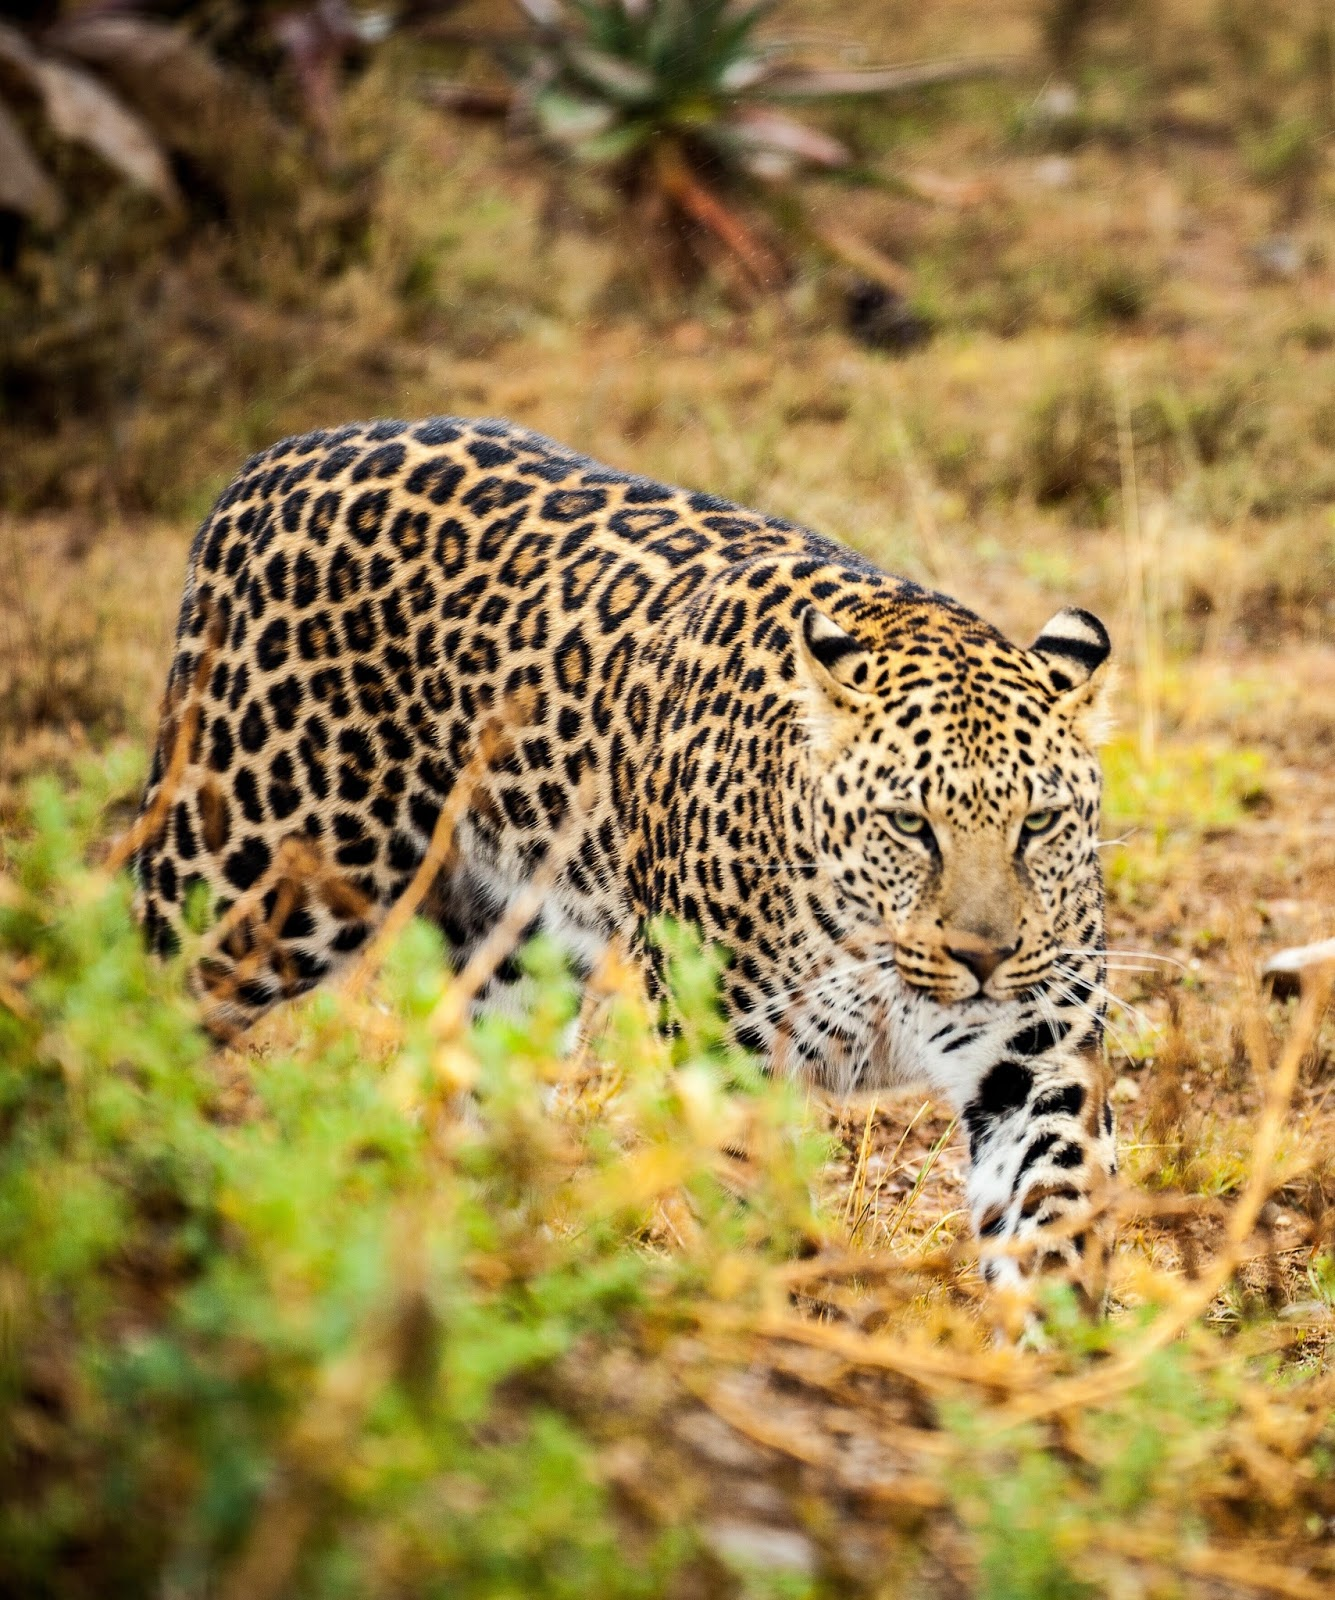 A picture of a leopard in the wild.